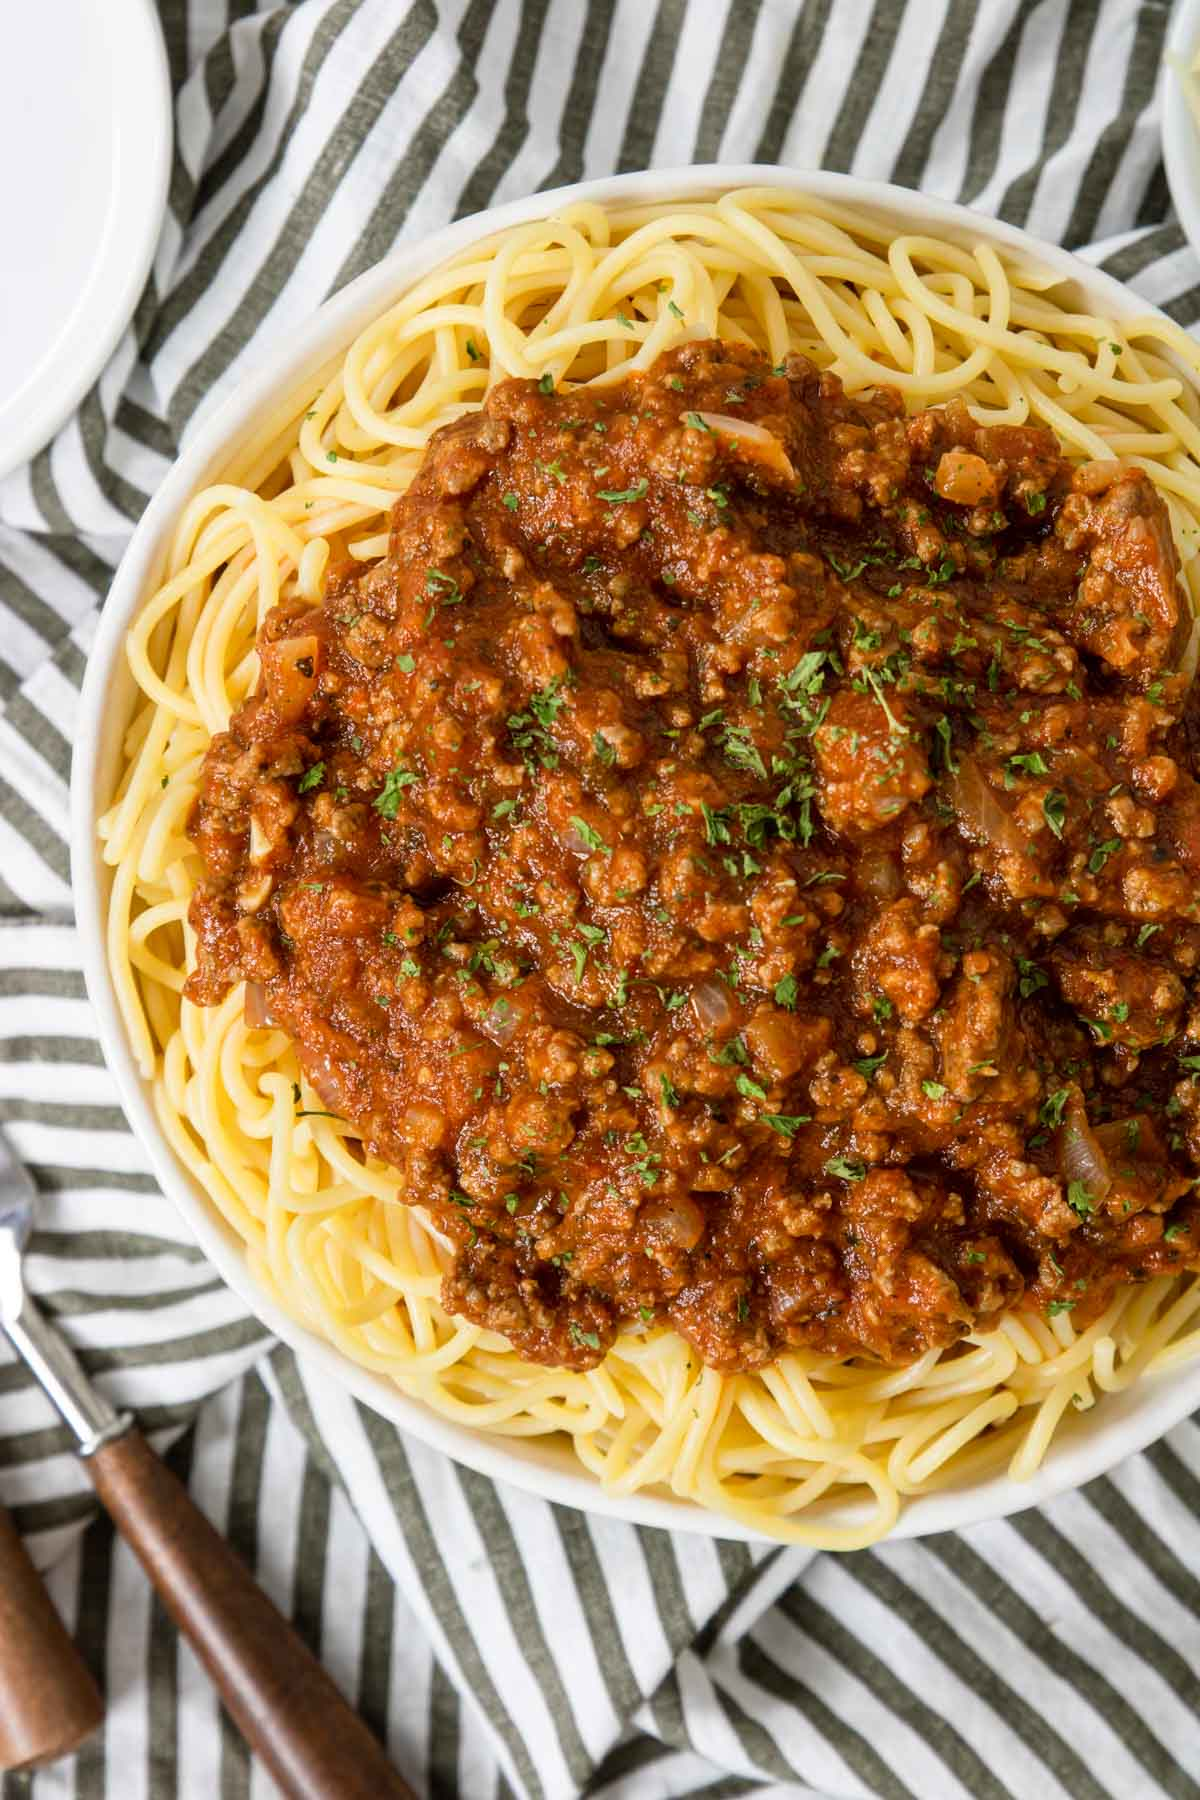 spaghetti with meat sauce on top and garnished with parsley